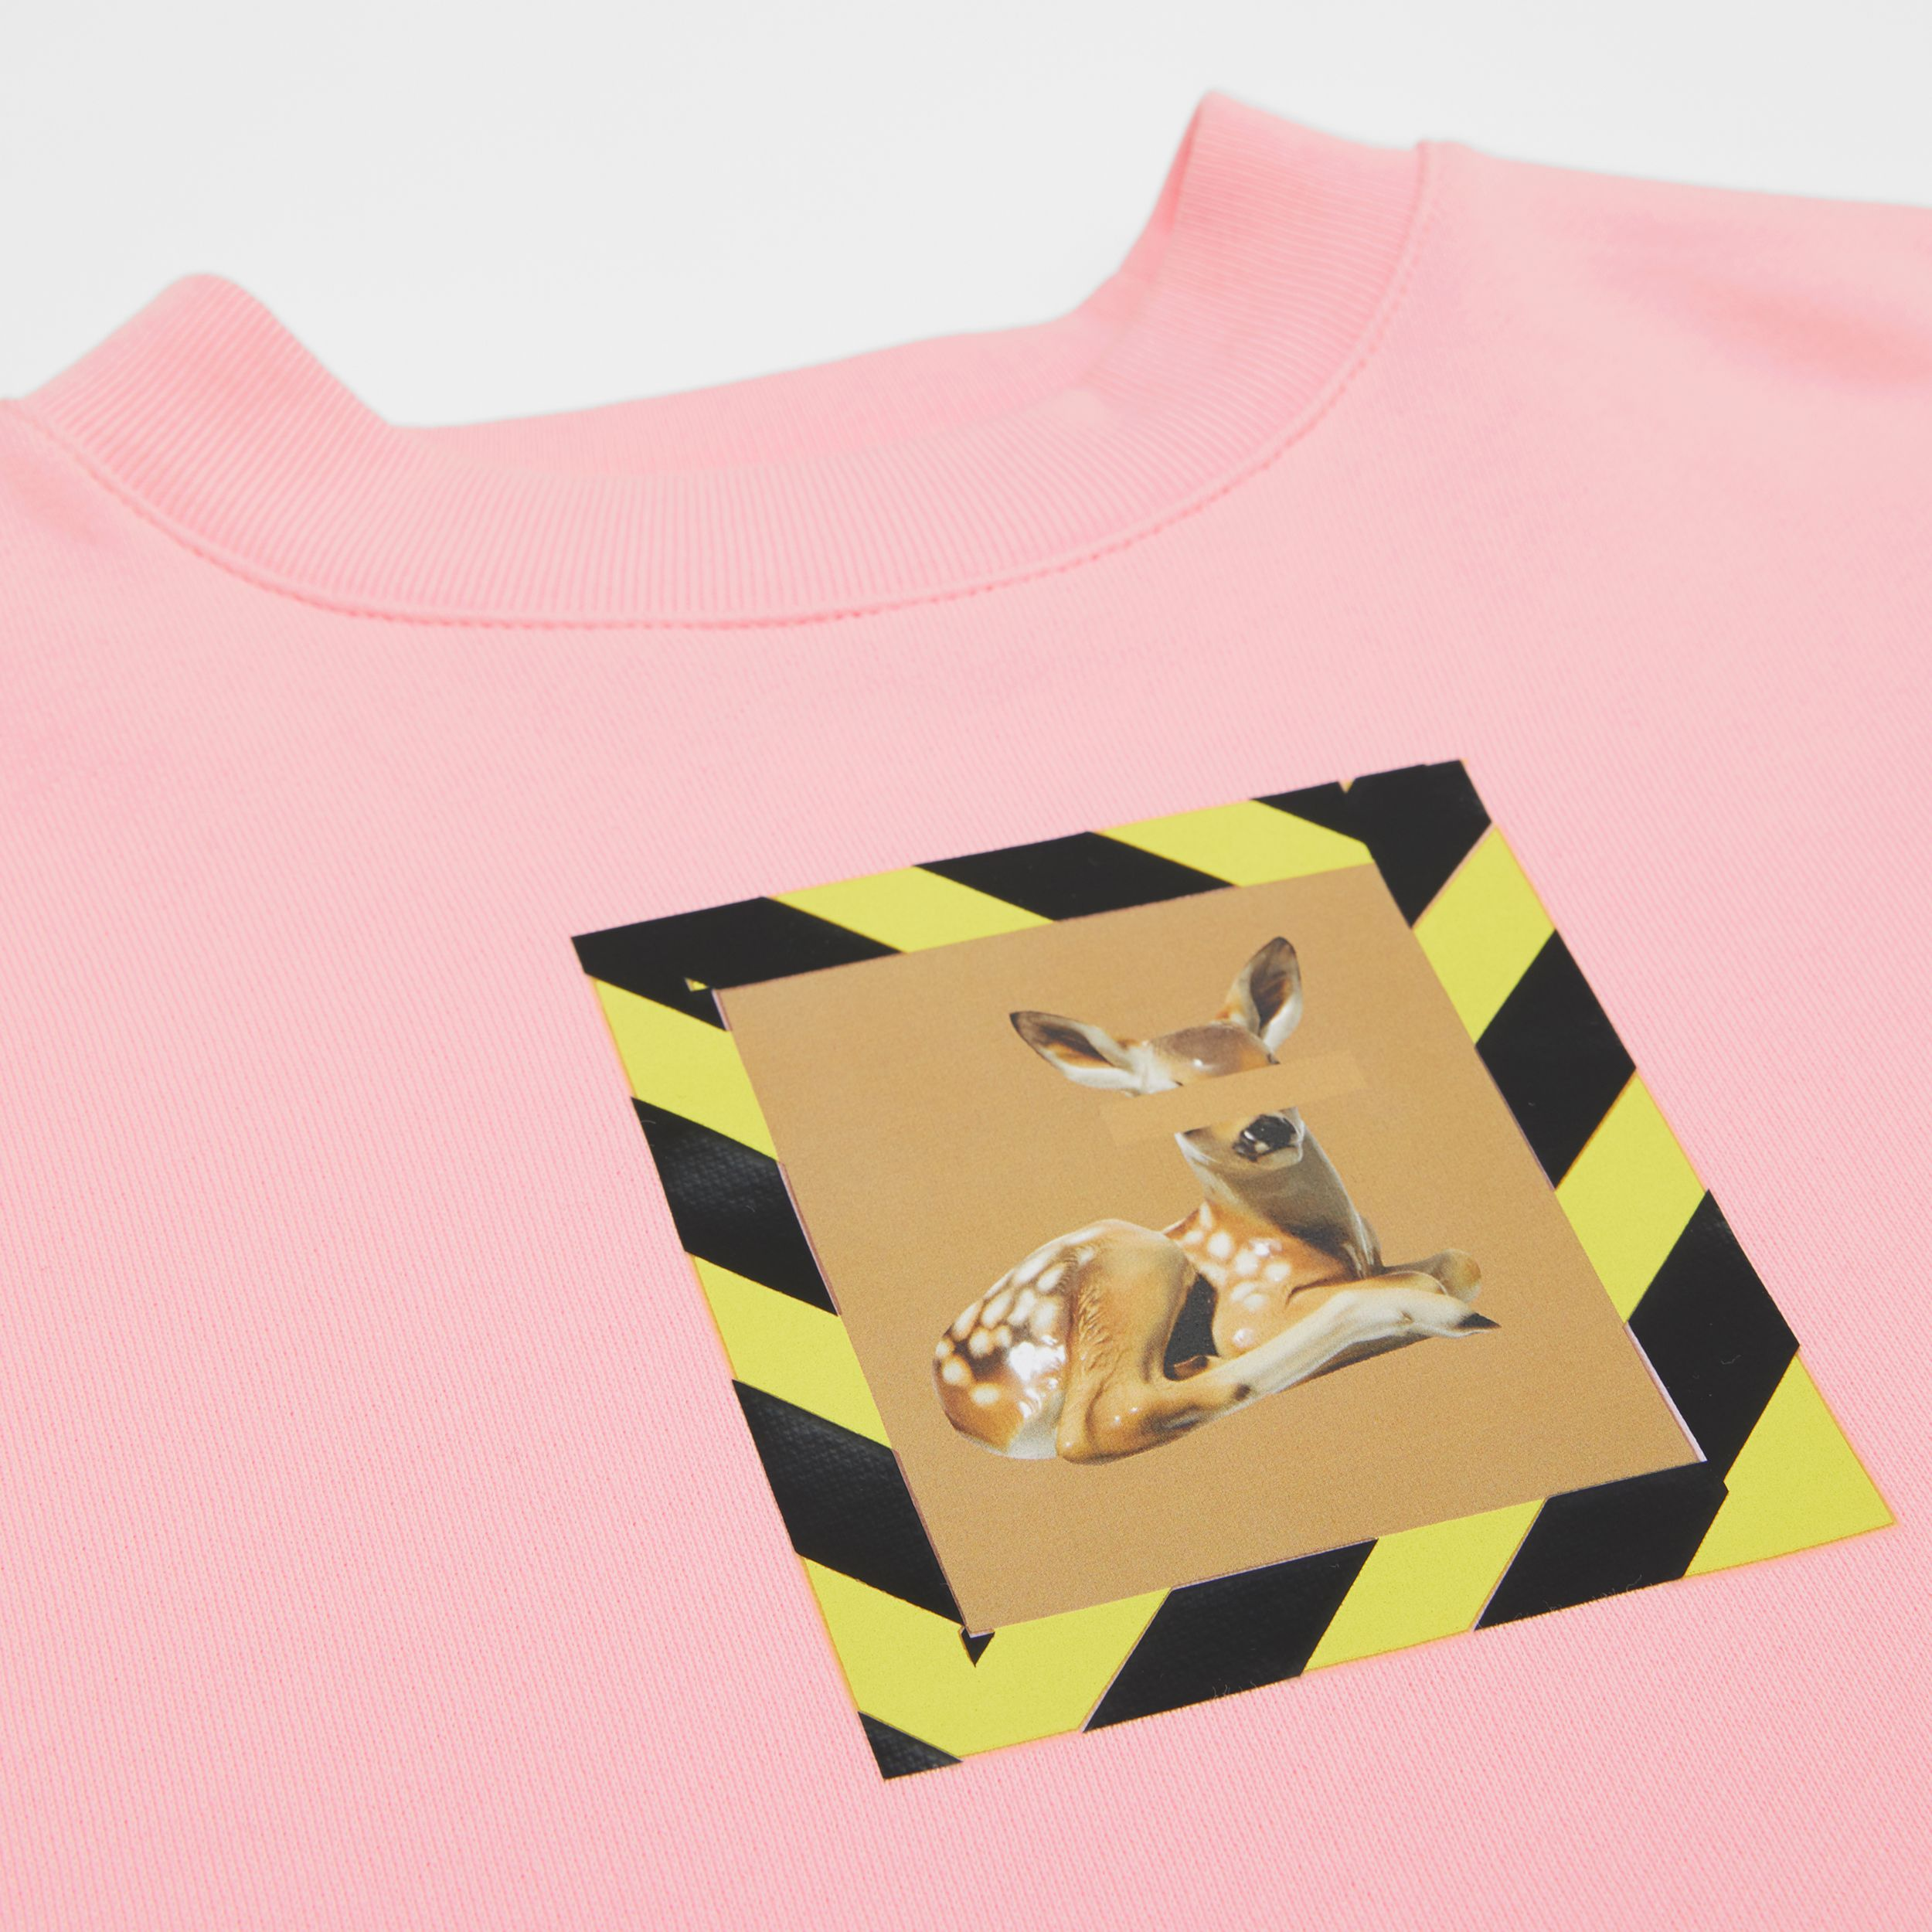 Deer Print Cotton Sweatshirt in Candy Pink | Burberry - 3